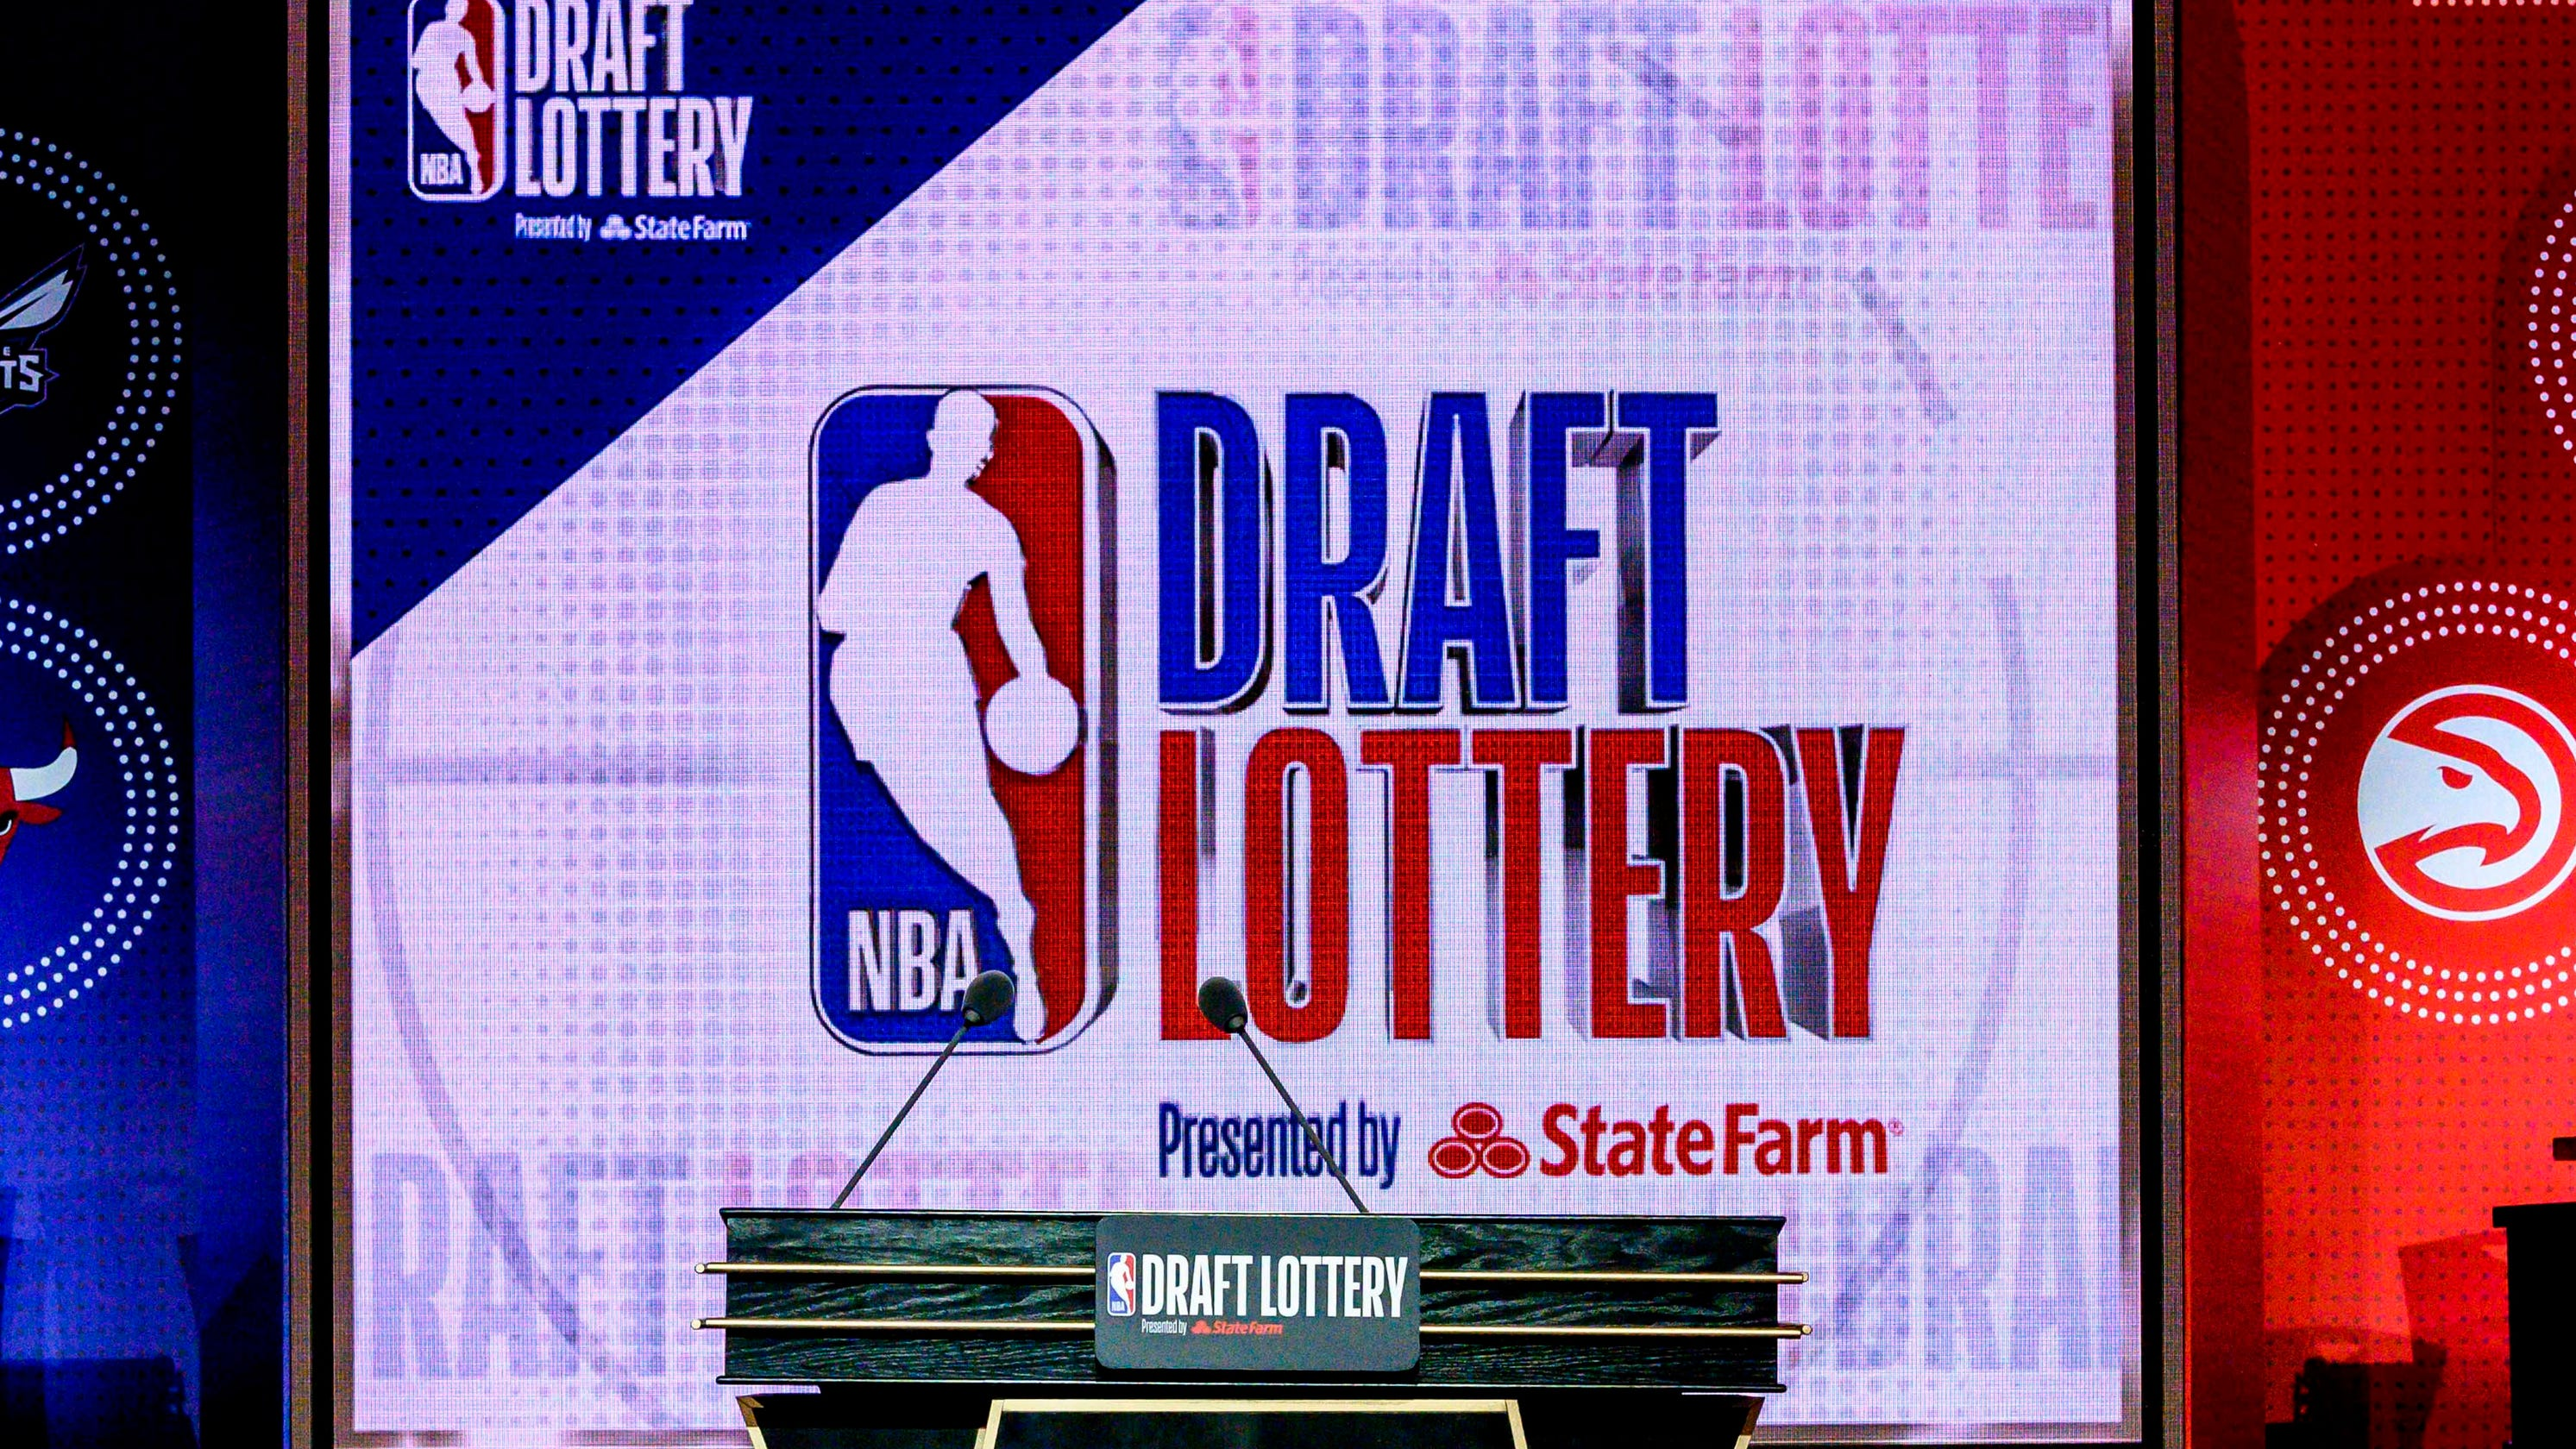 2020 NBA draft lottery: Schedule, odds and everything to know